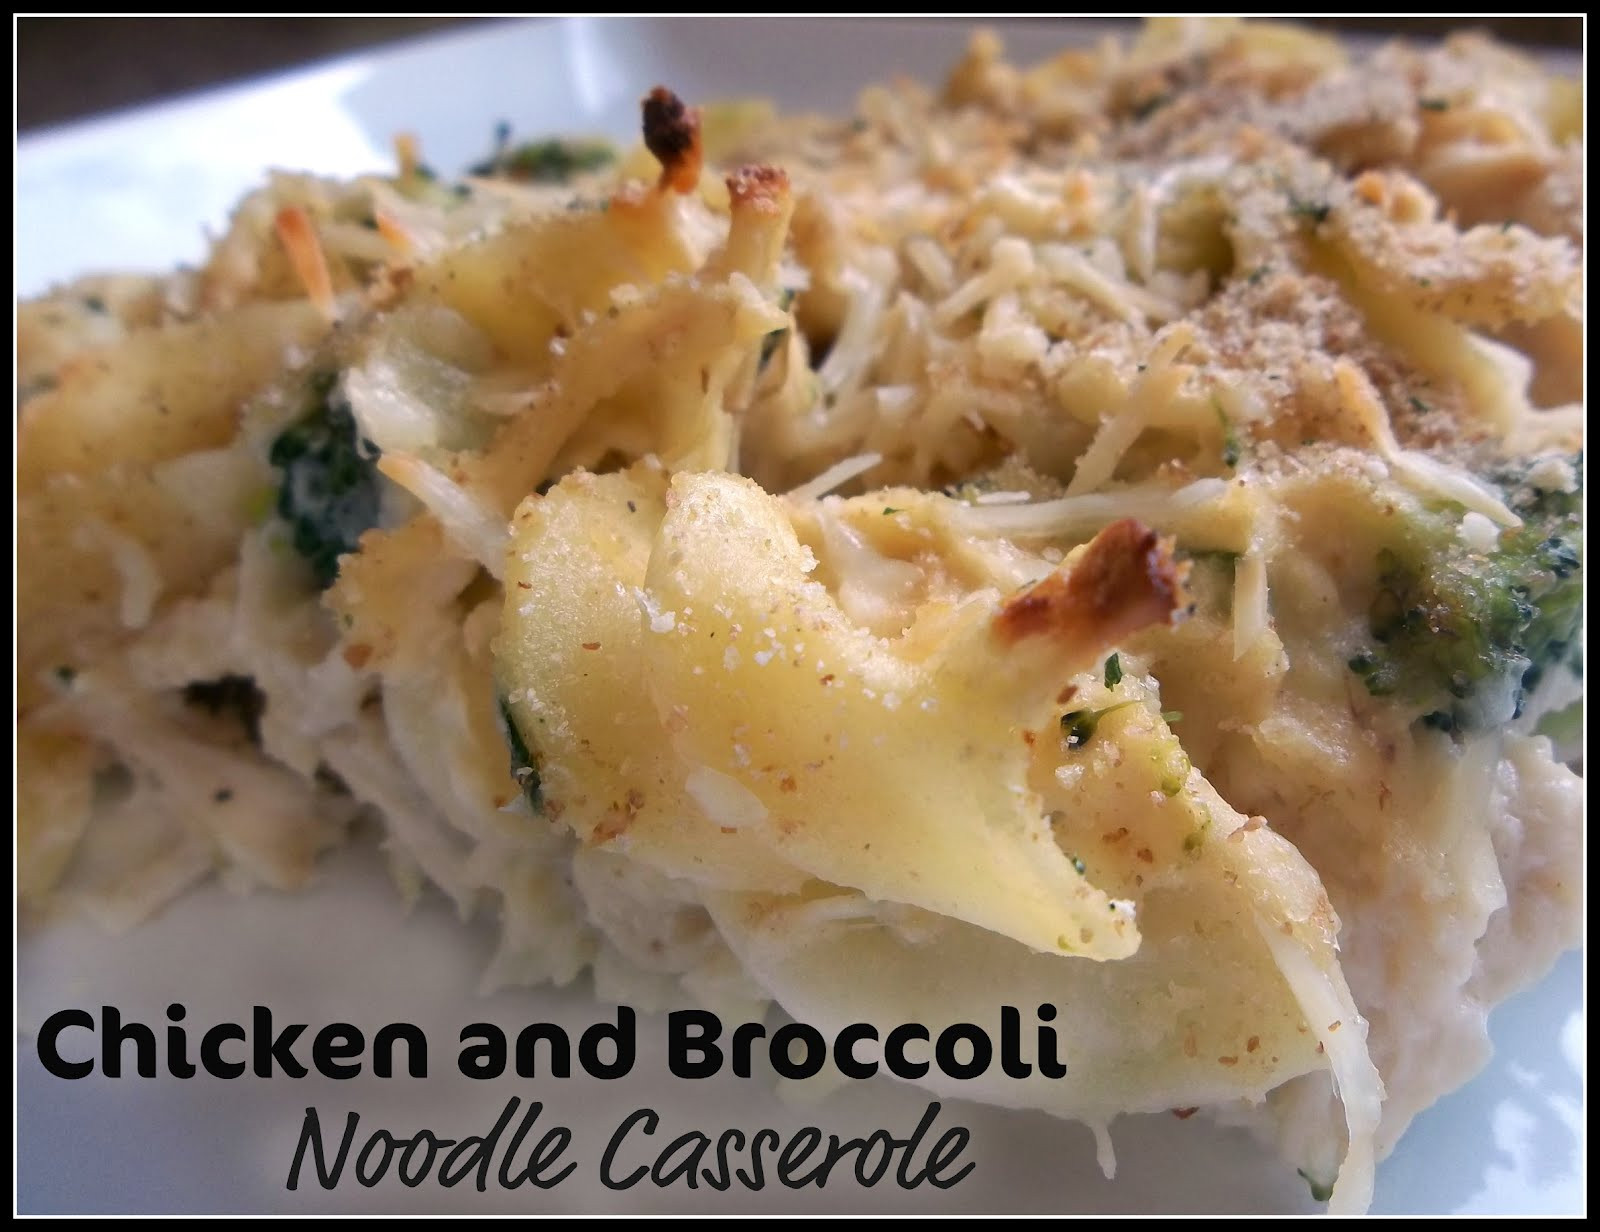 Chicken Noodle Casserole Healthy top 20 Chicken and Broccoli Noodle Casserole